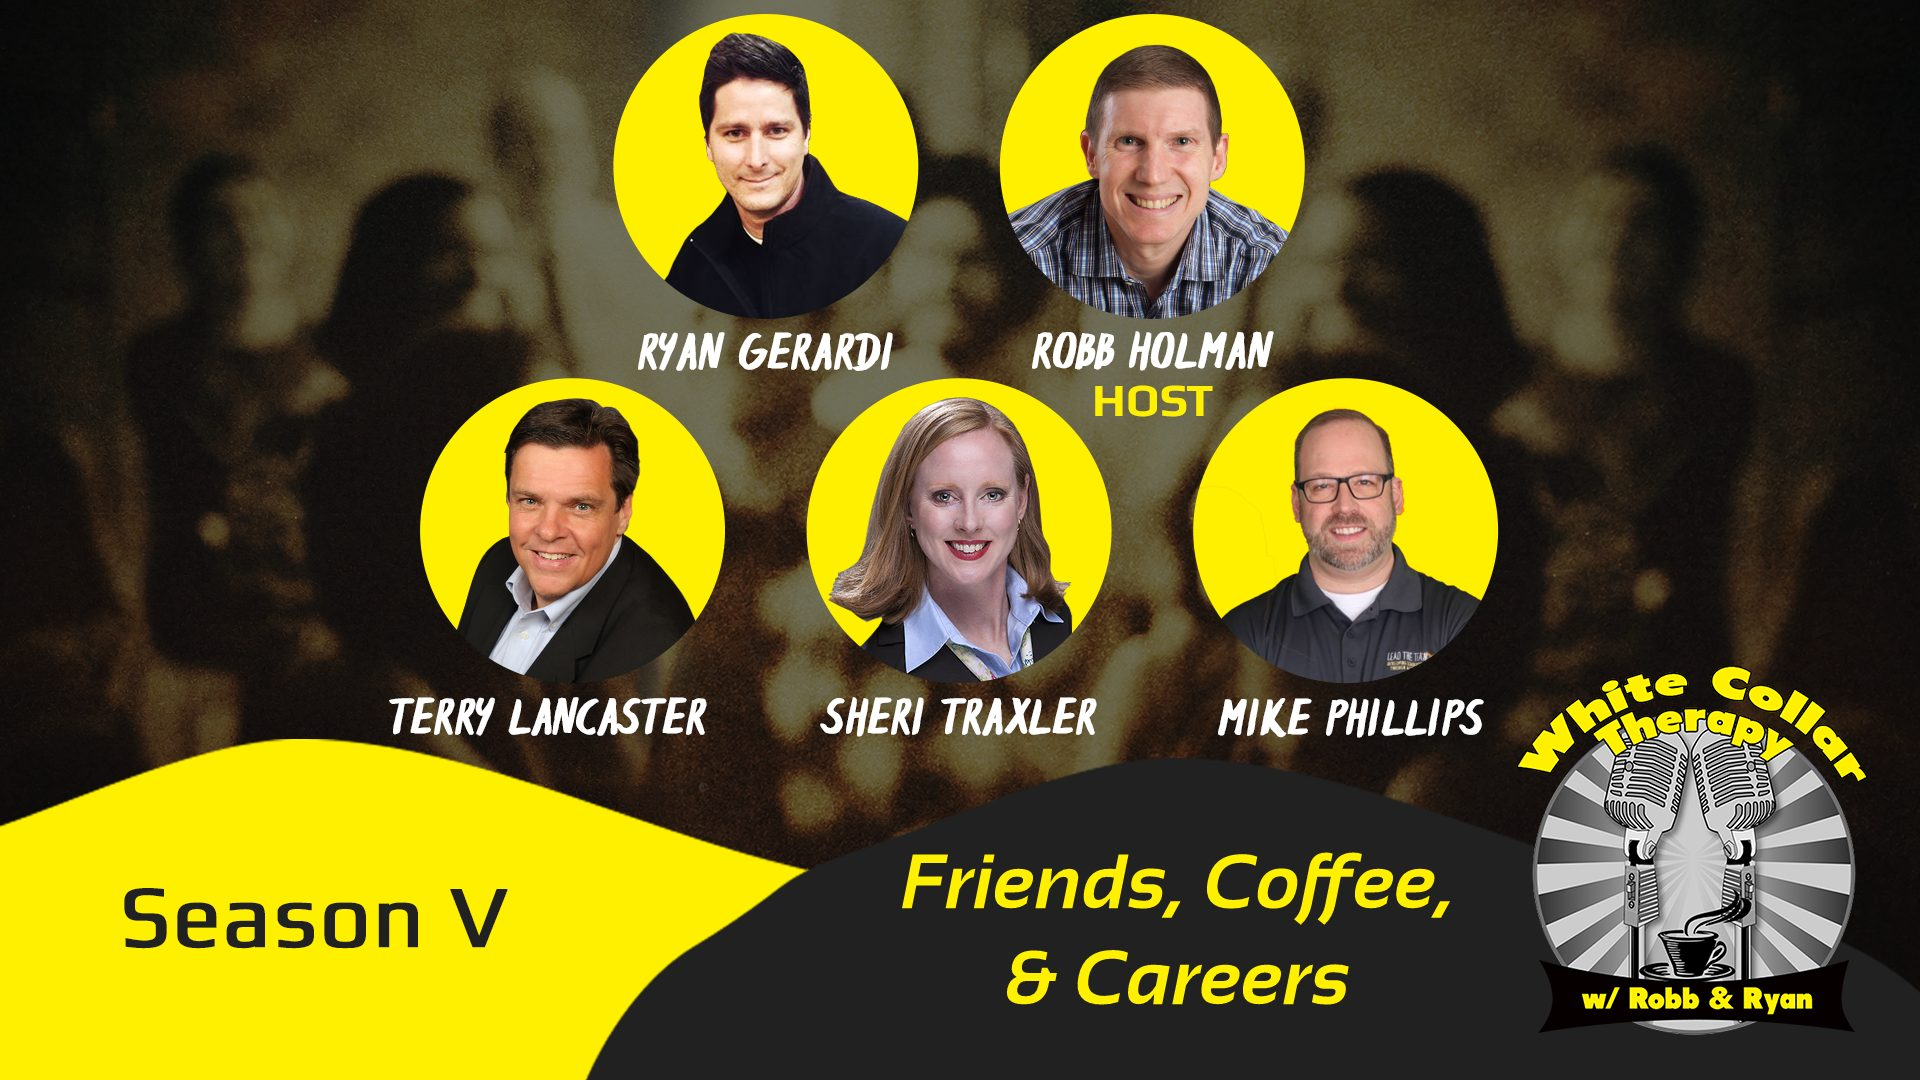 White Collar Therapy - Friends, Coffee, & Careers